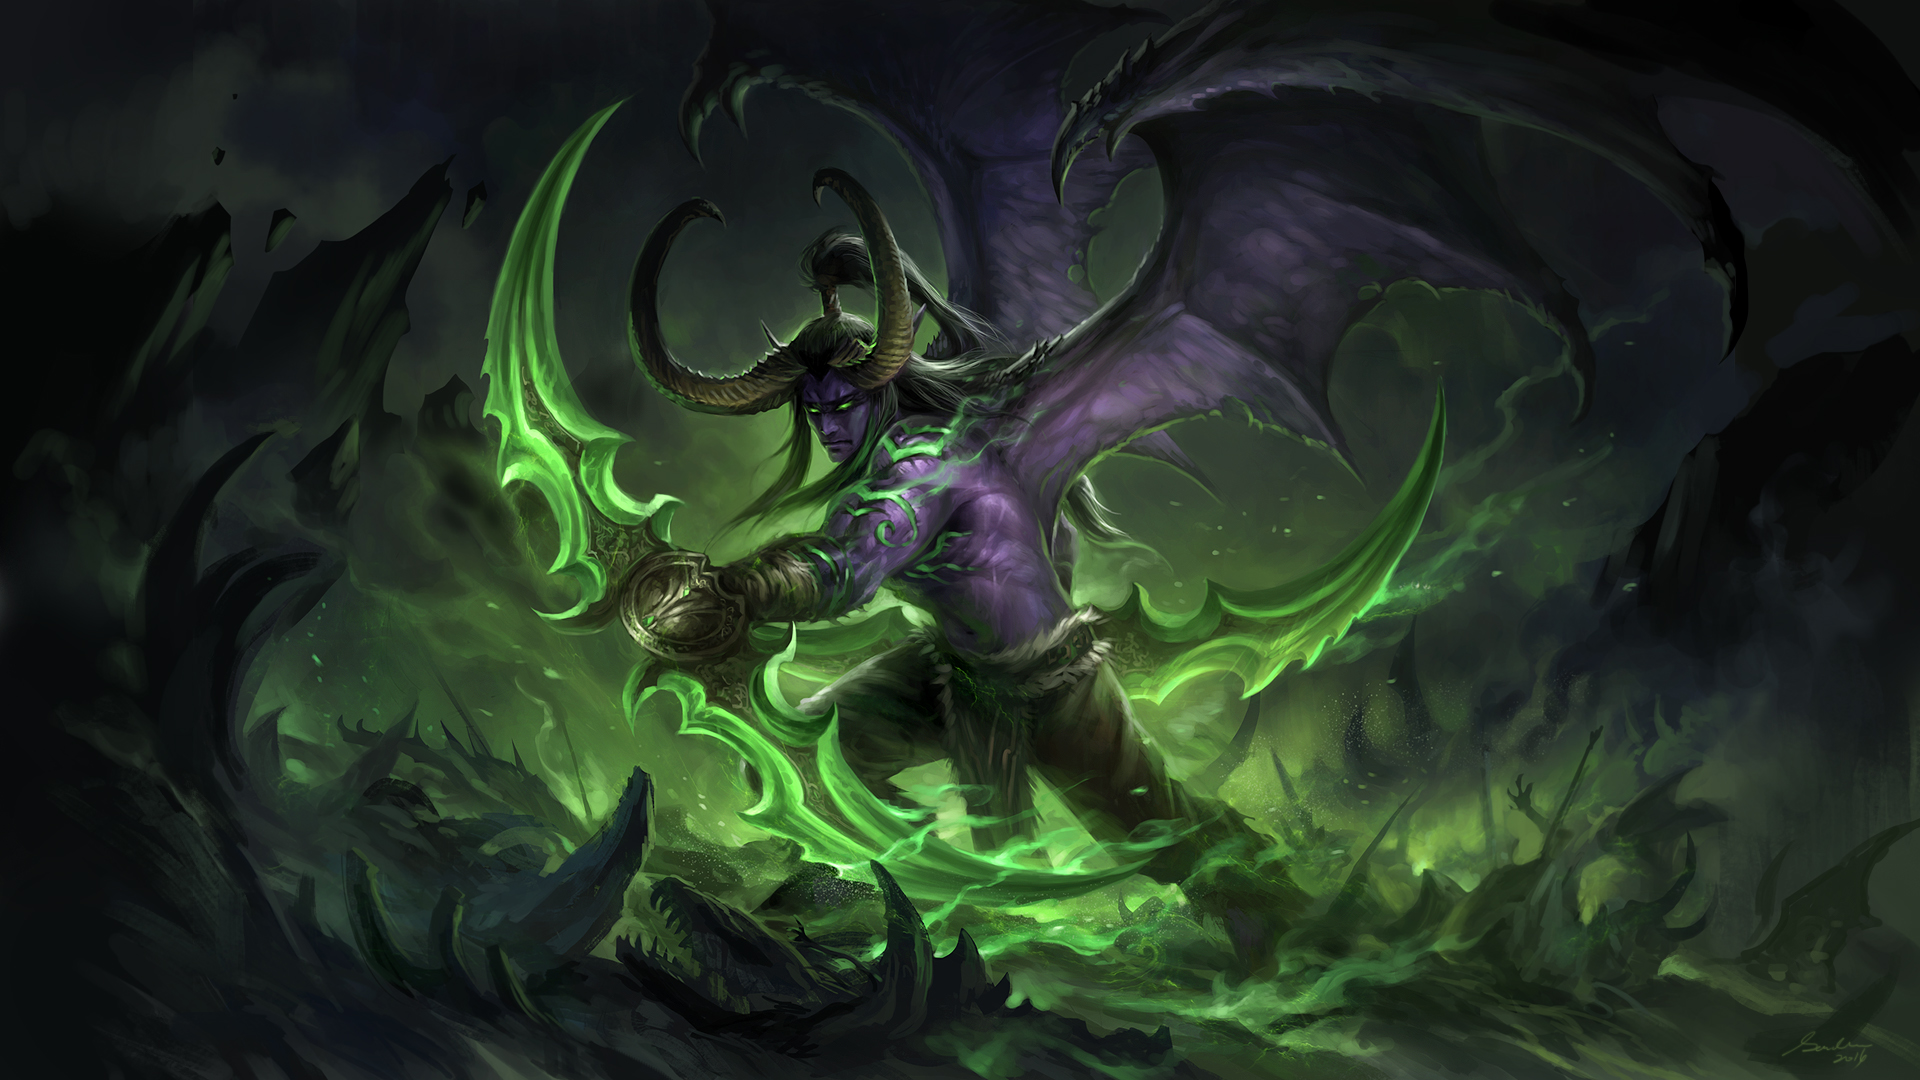 Illidan (large ver) by sandara on DeviantArt